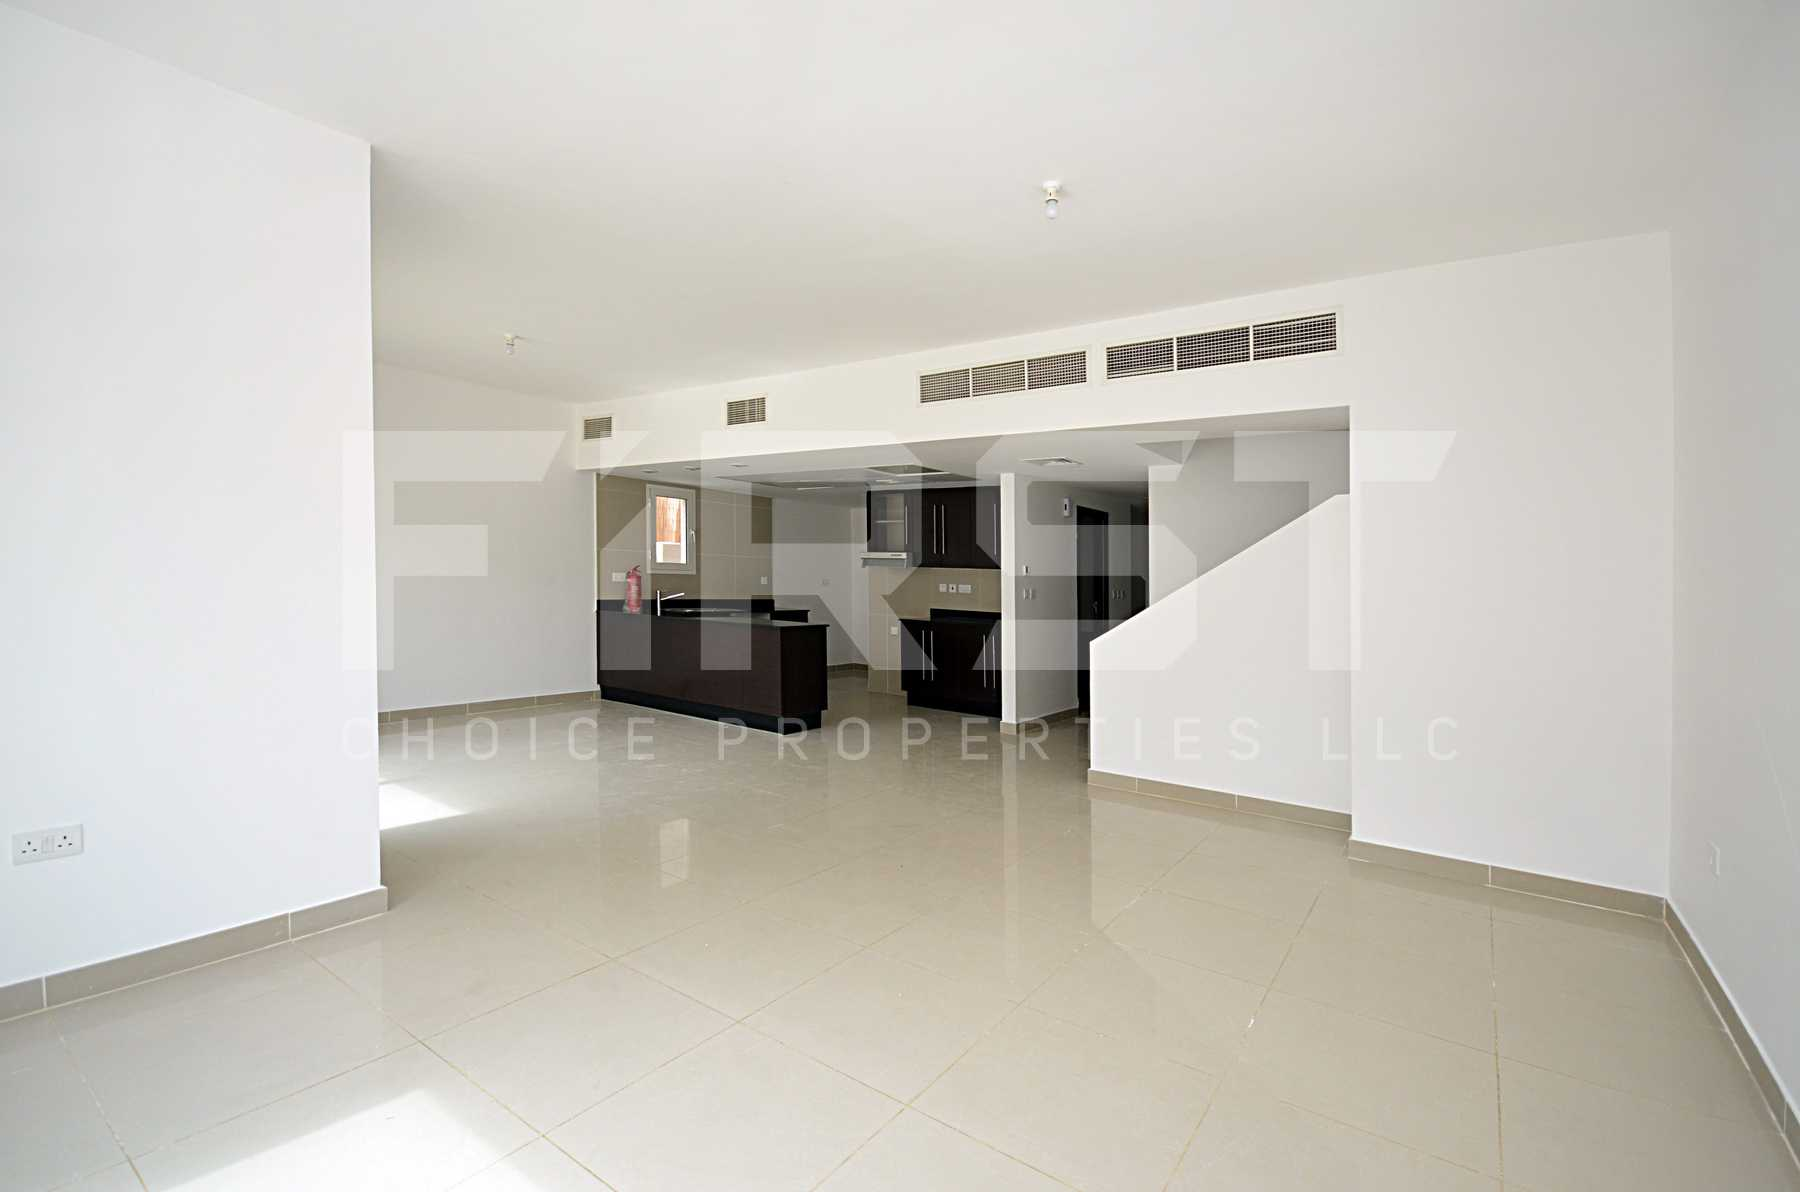 4. Internal Photo of 4 Bedroom Villa in Al Reef Villas Al Reef Abu Dhabi UAE 265.5 sq.m 2858 sq.ft (41).jpg